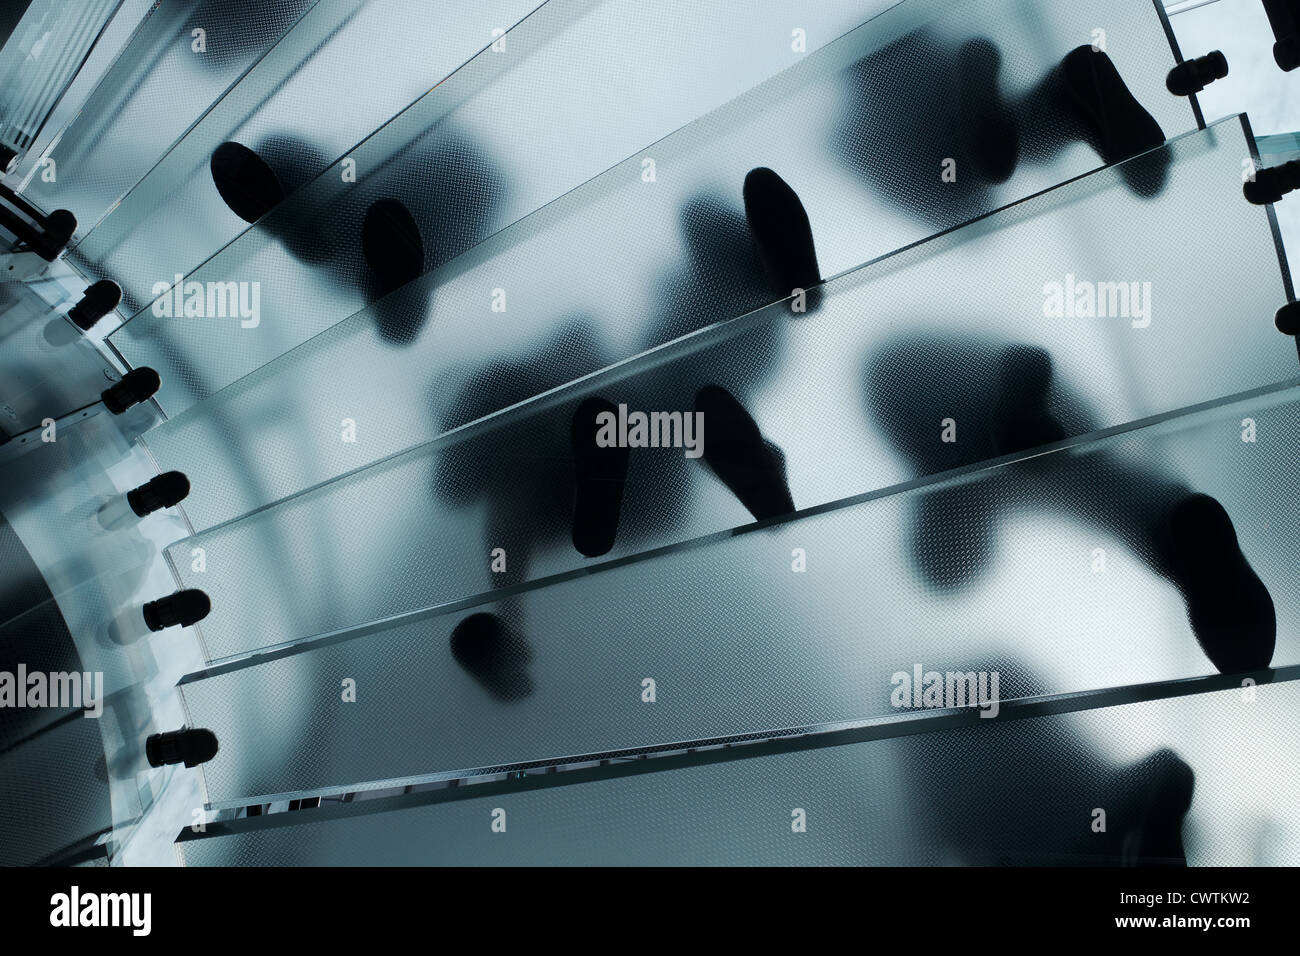 Feet walking on a glass staircase in the Apple NYC Fifth Avenue store. Feet are seen from underneath so silhouetted Stock Photo